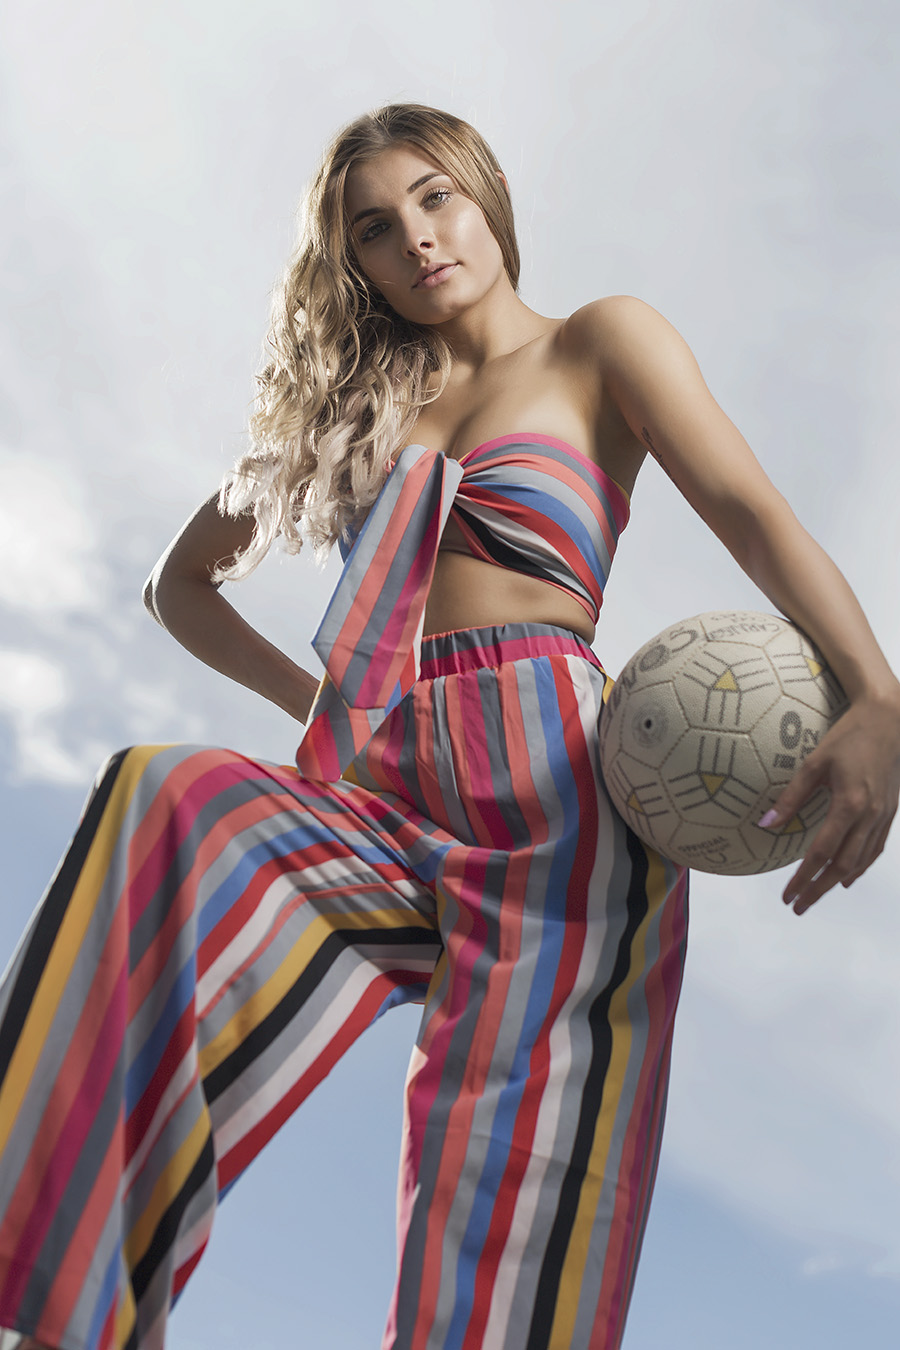 Nikita during her fitness shoot wearing fashion clothing holding a netball